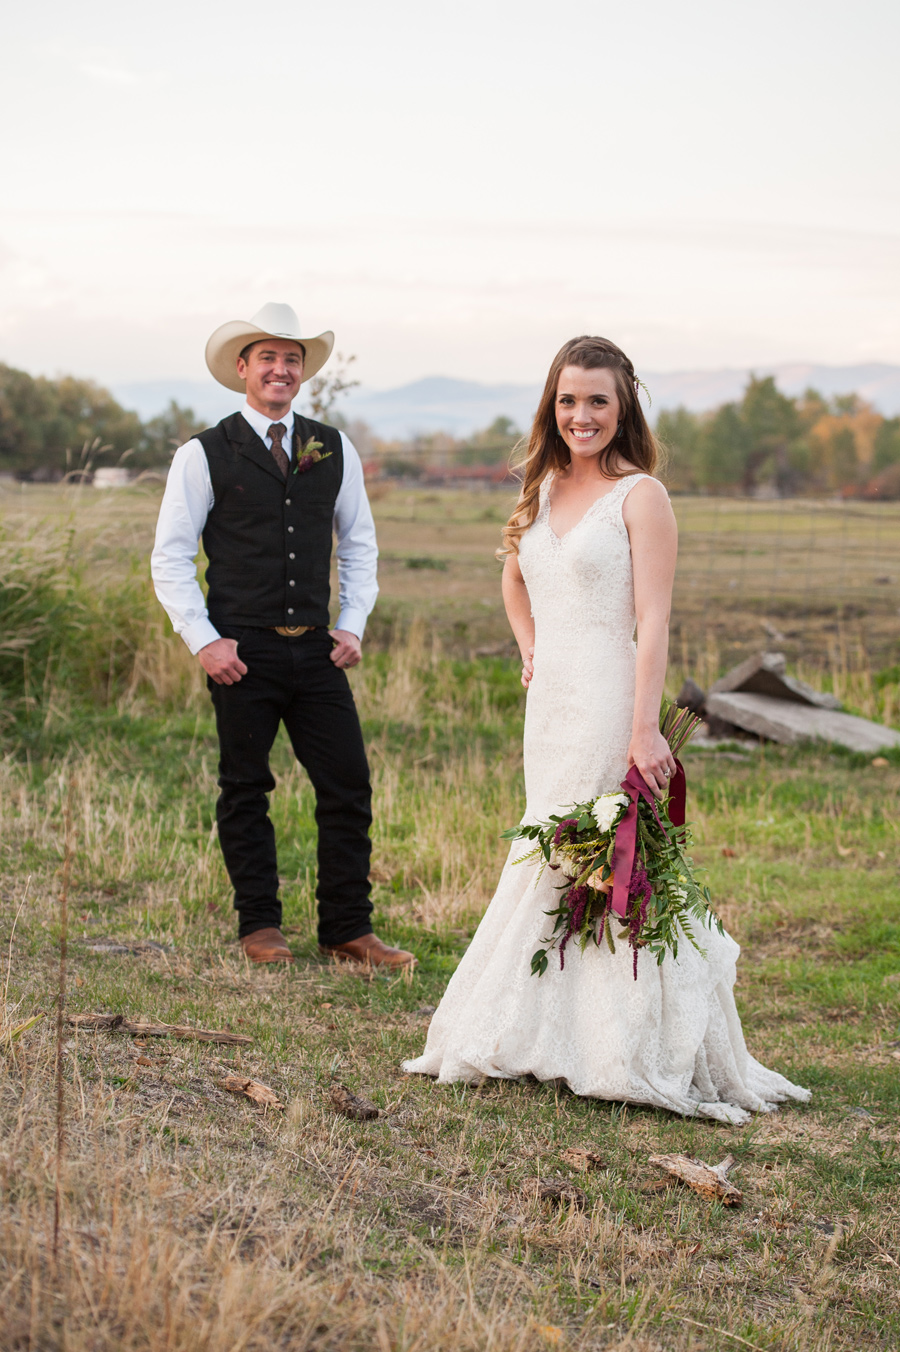 Montana Bride + Groom / Cowboy / Cali Frankovic Photography